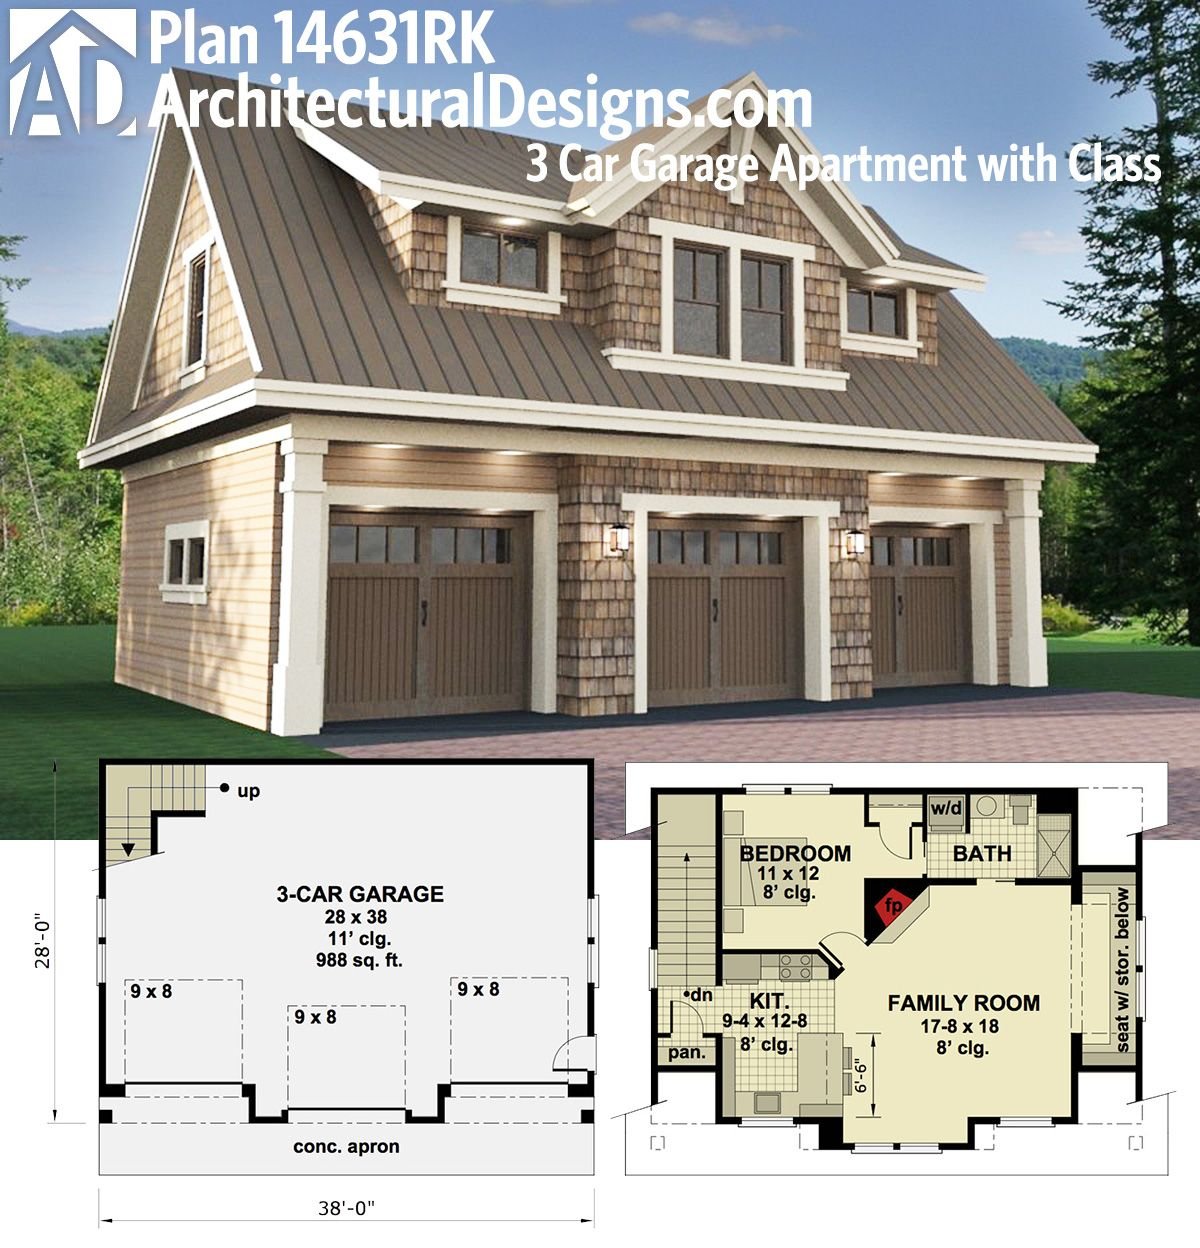 Plan 14631rk 3 car garage apartment with class carriage for A frame house plans with garage